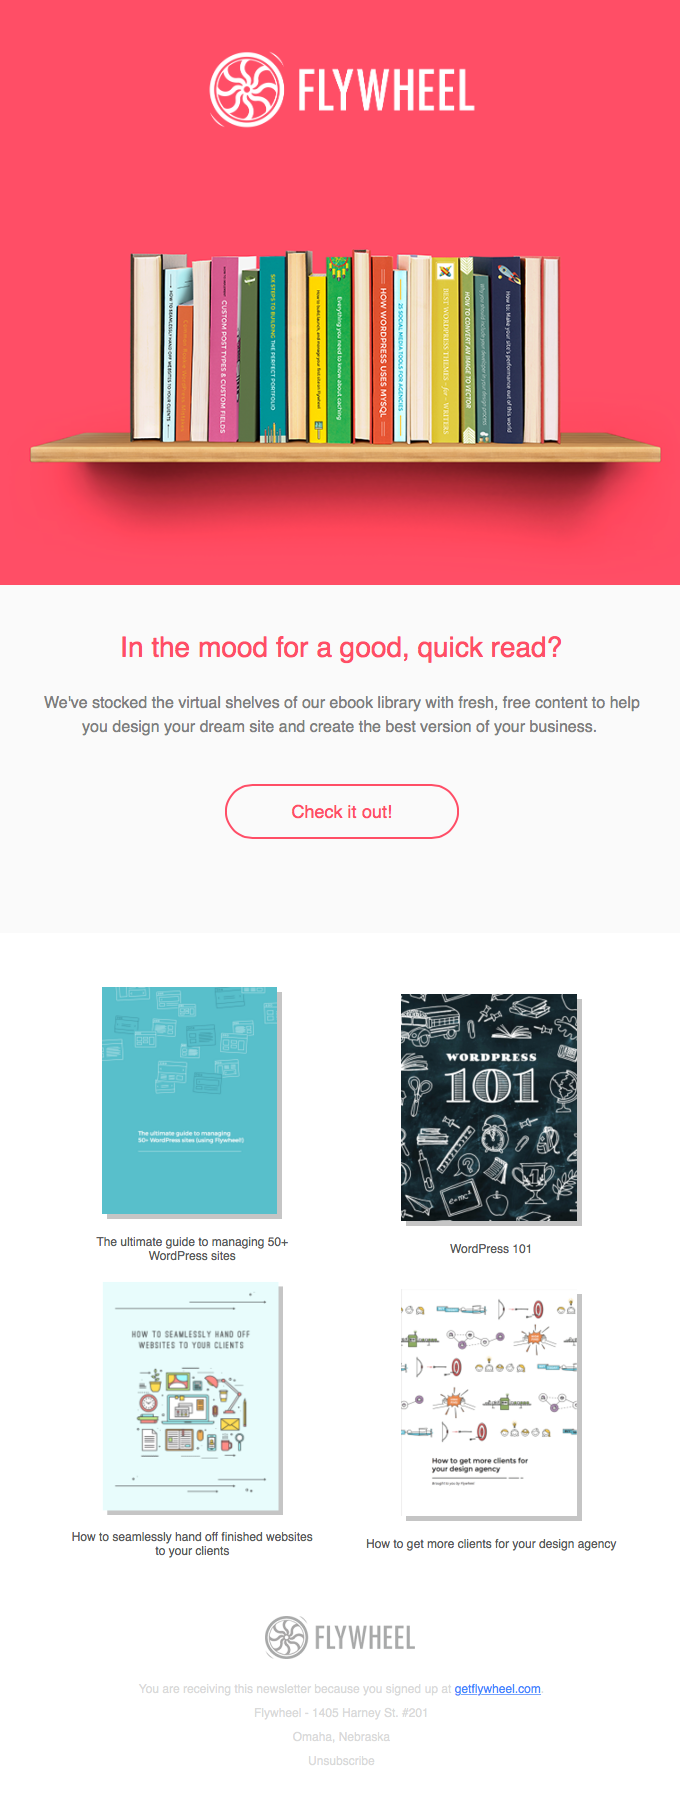 25 free ebooks to help you grow your design business